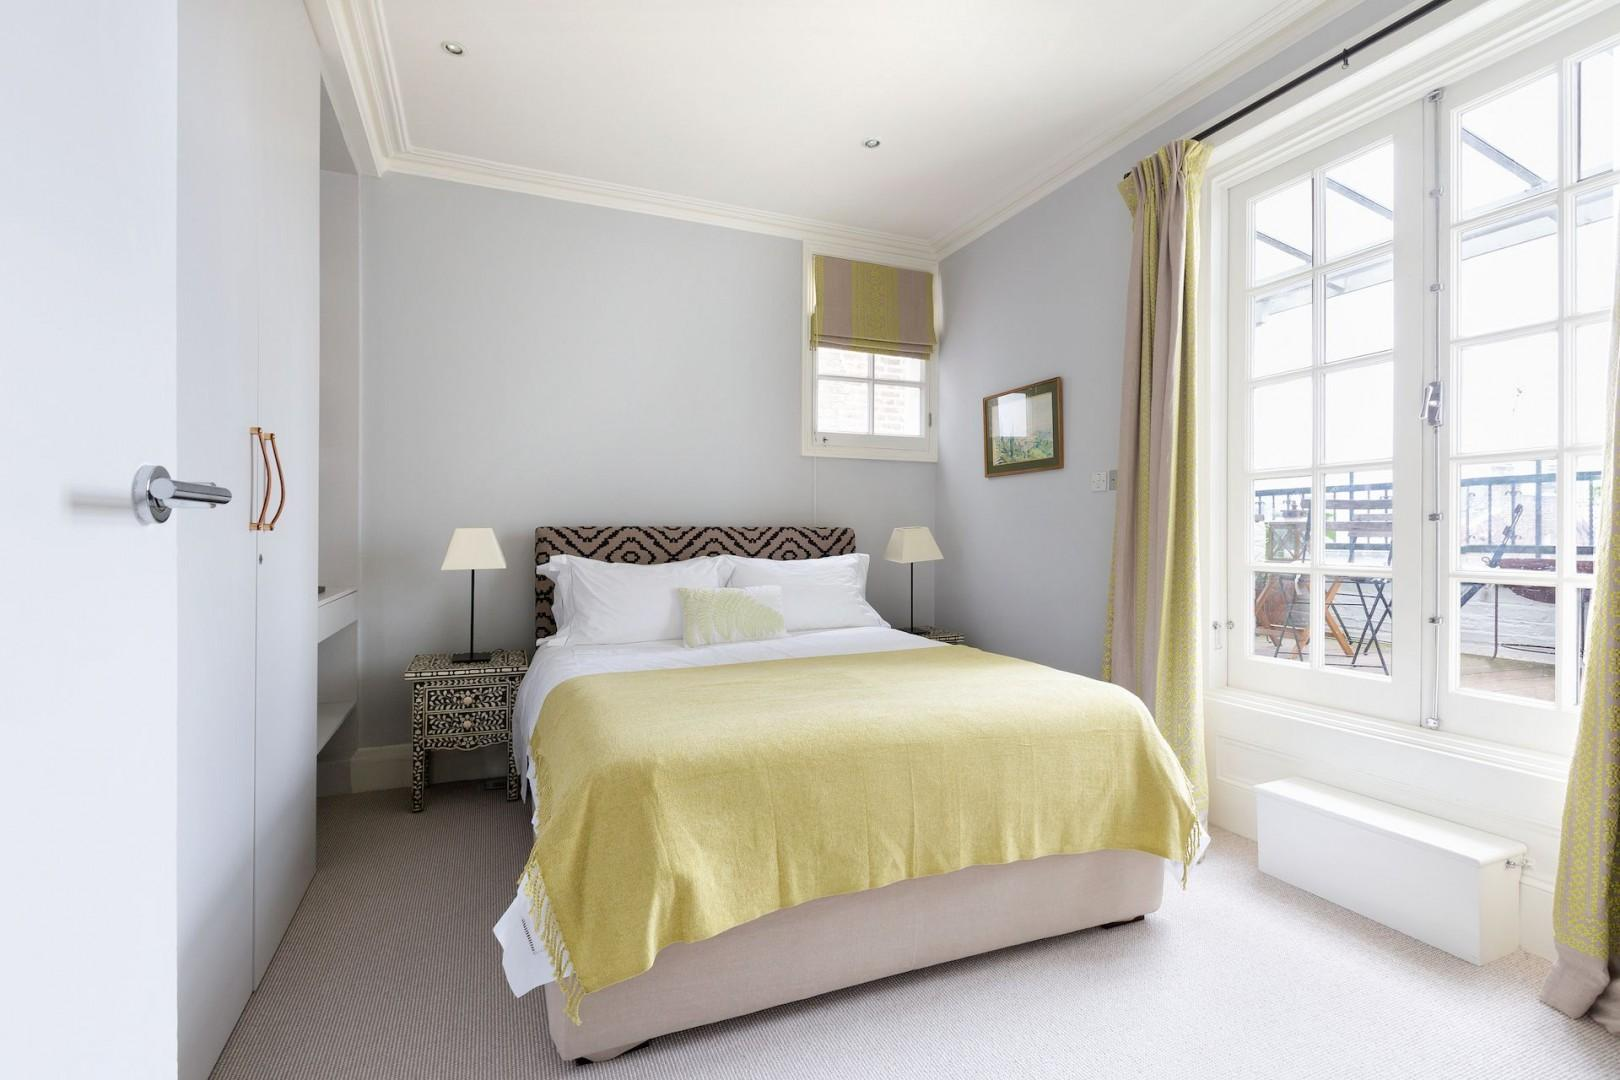 The second bedroom is airy and comfortable